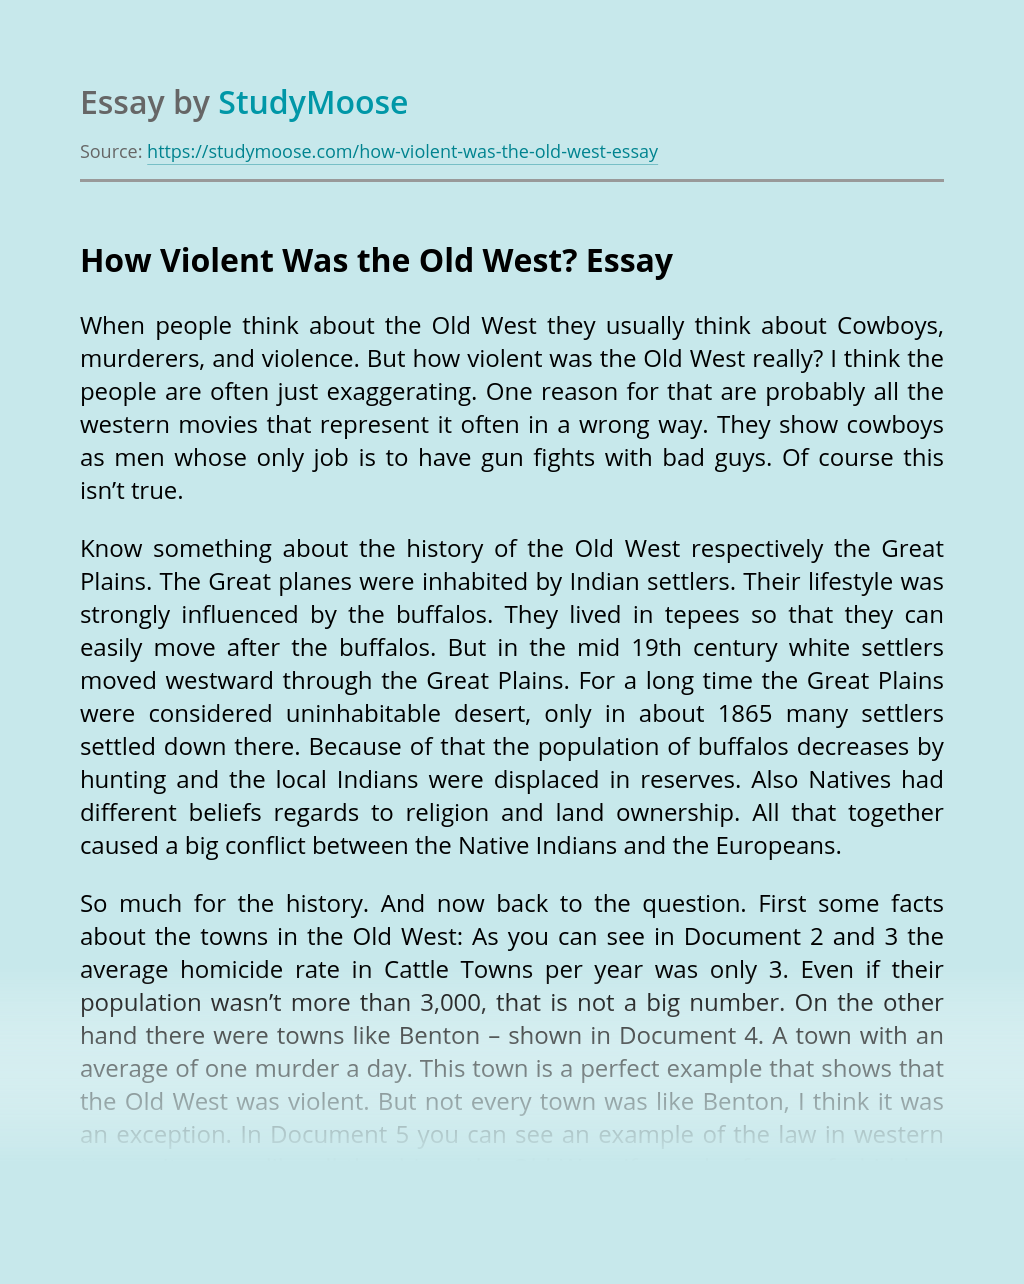 How Violent Was the Old West?